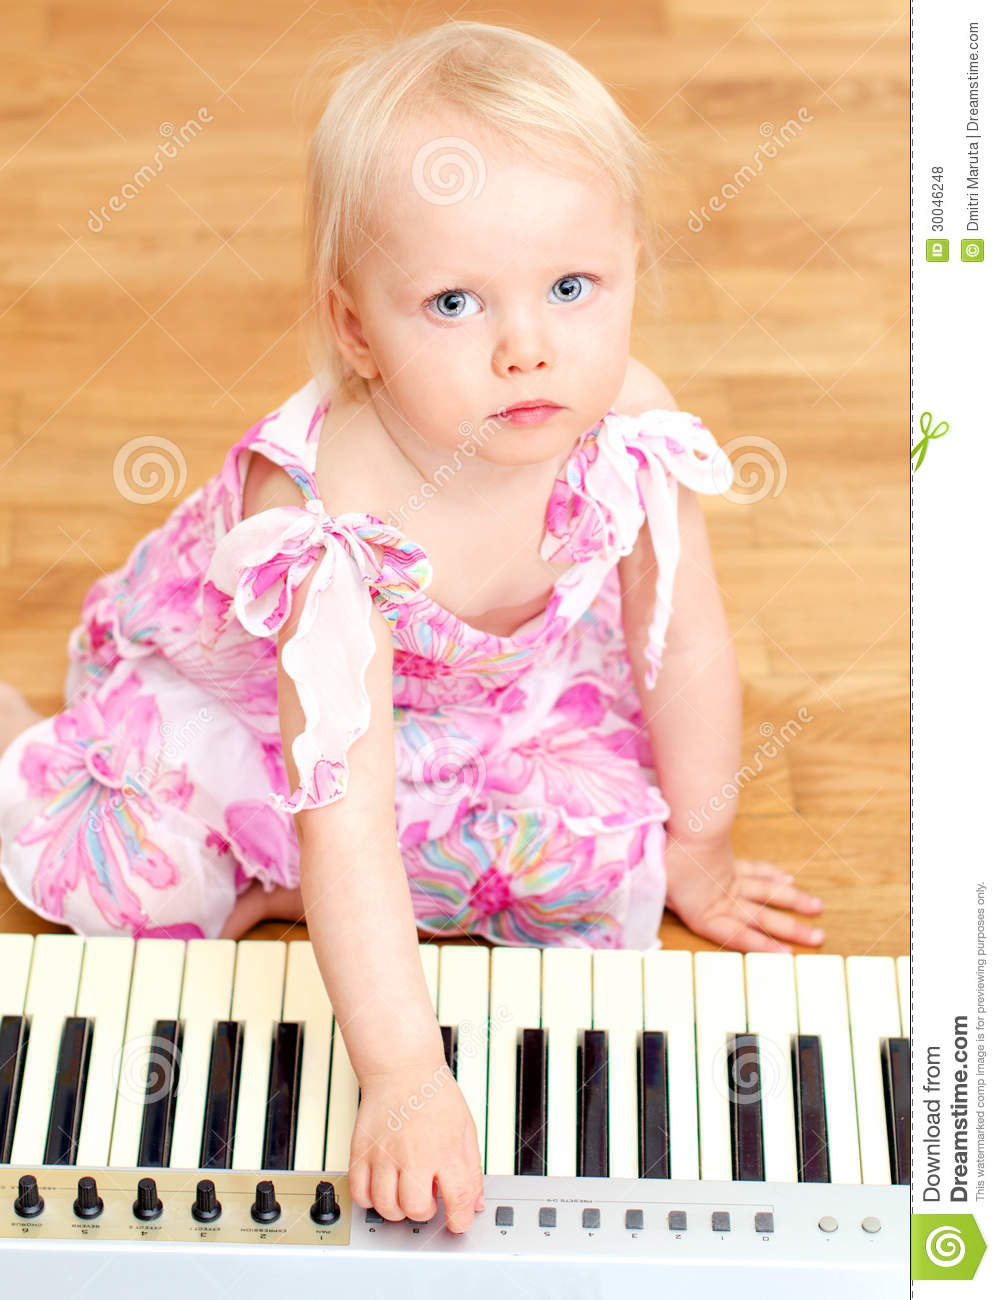 Free Clipart Girl Playing Piano